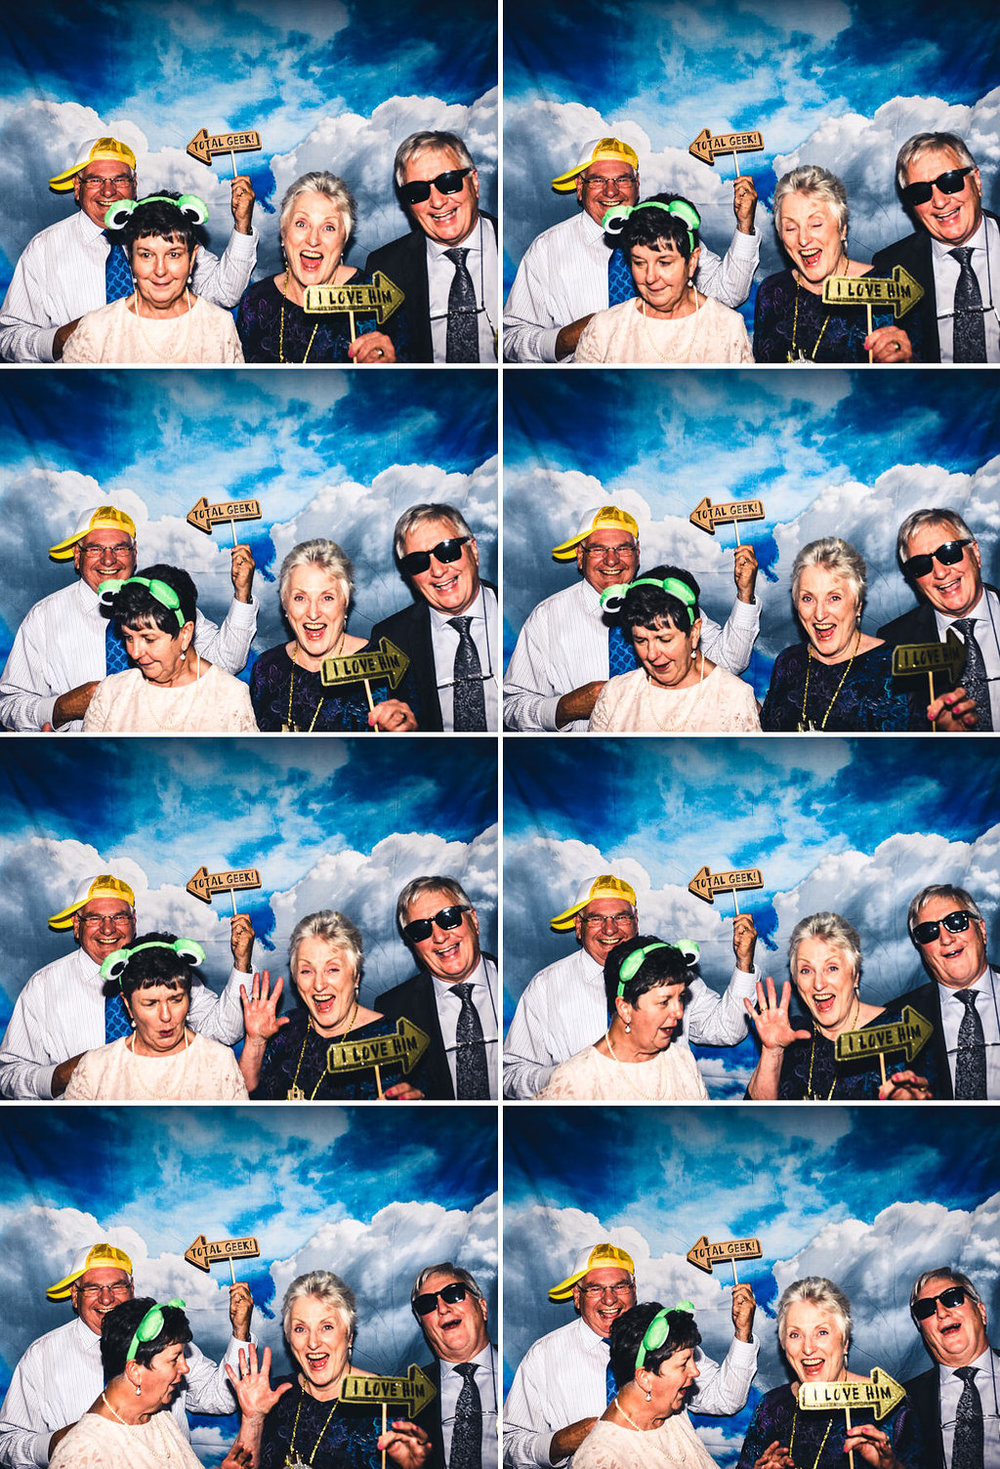 photobooth-108.jpg